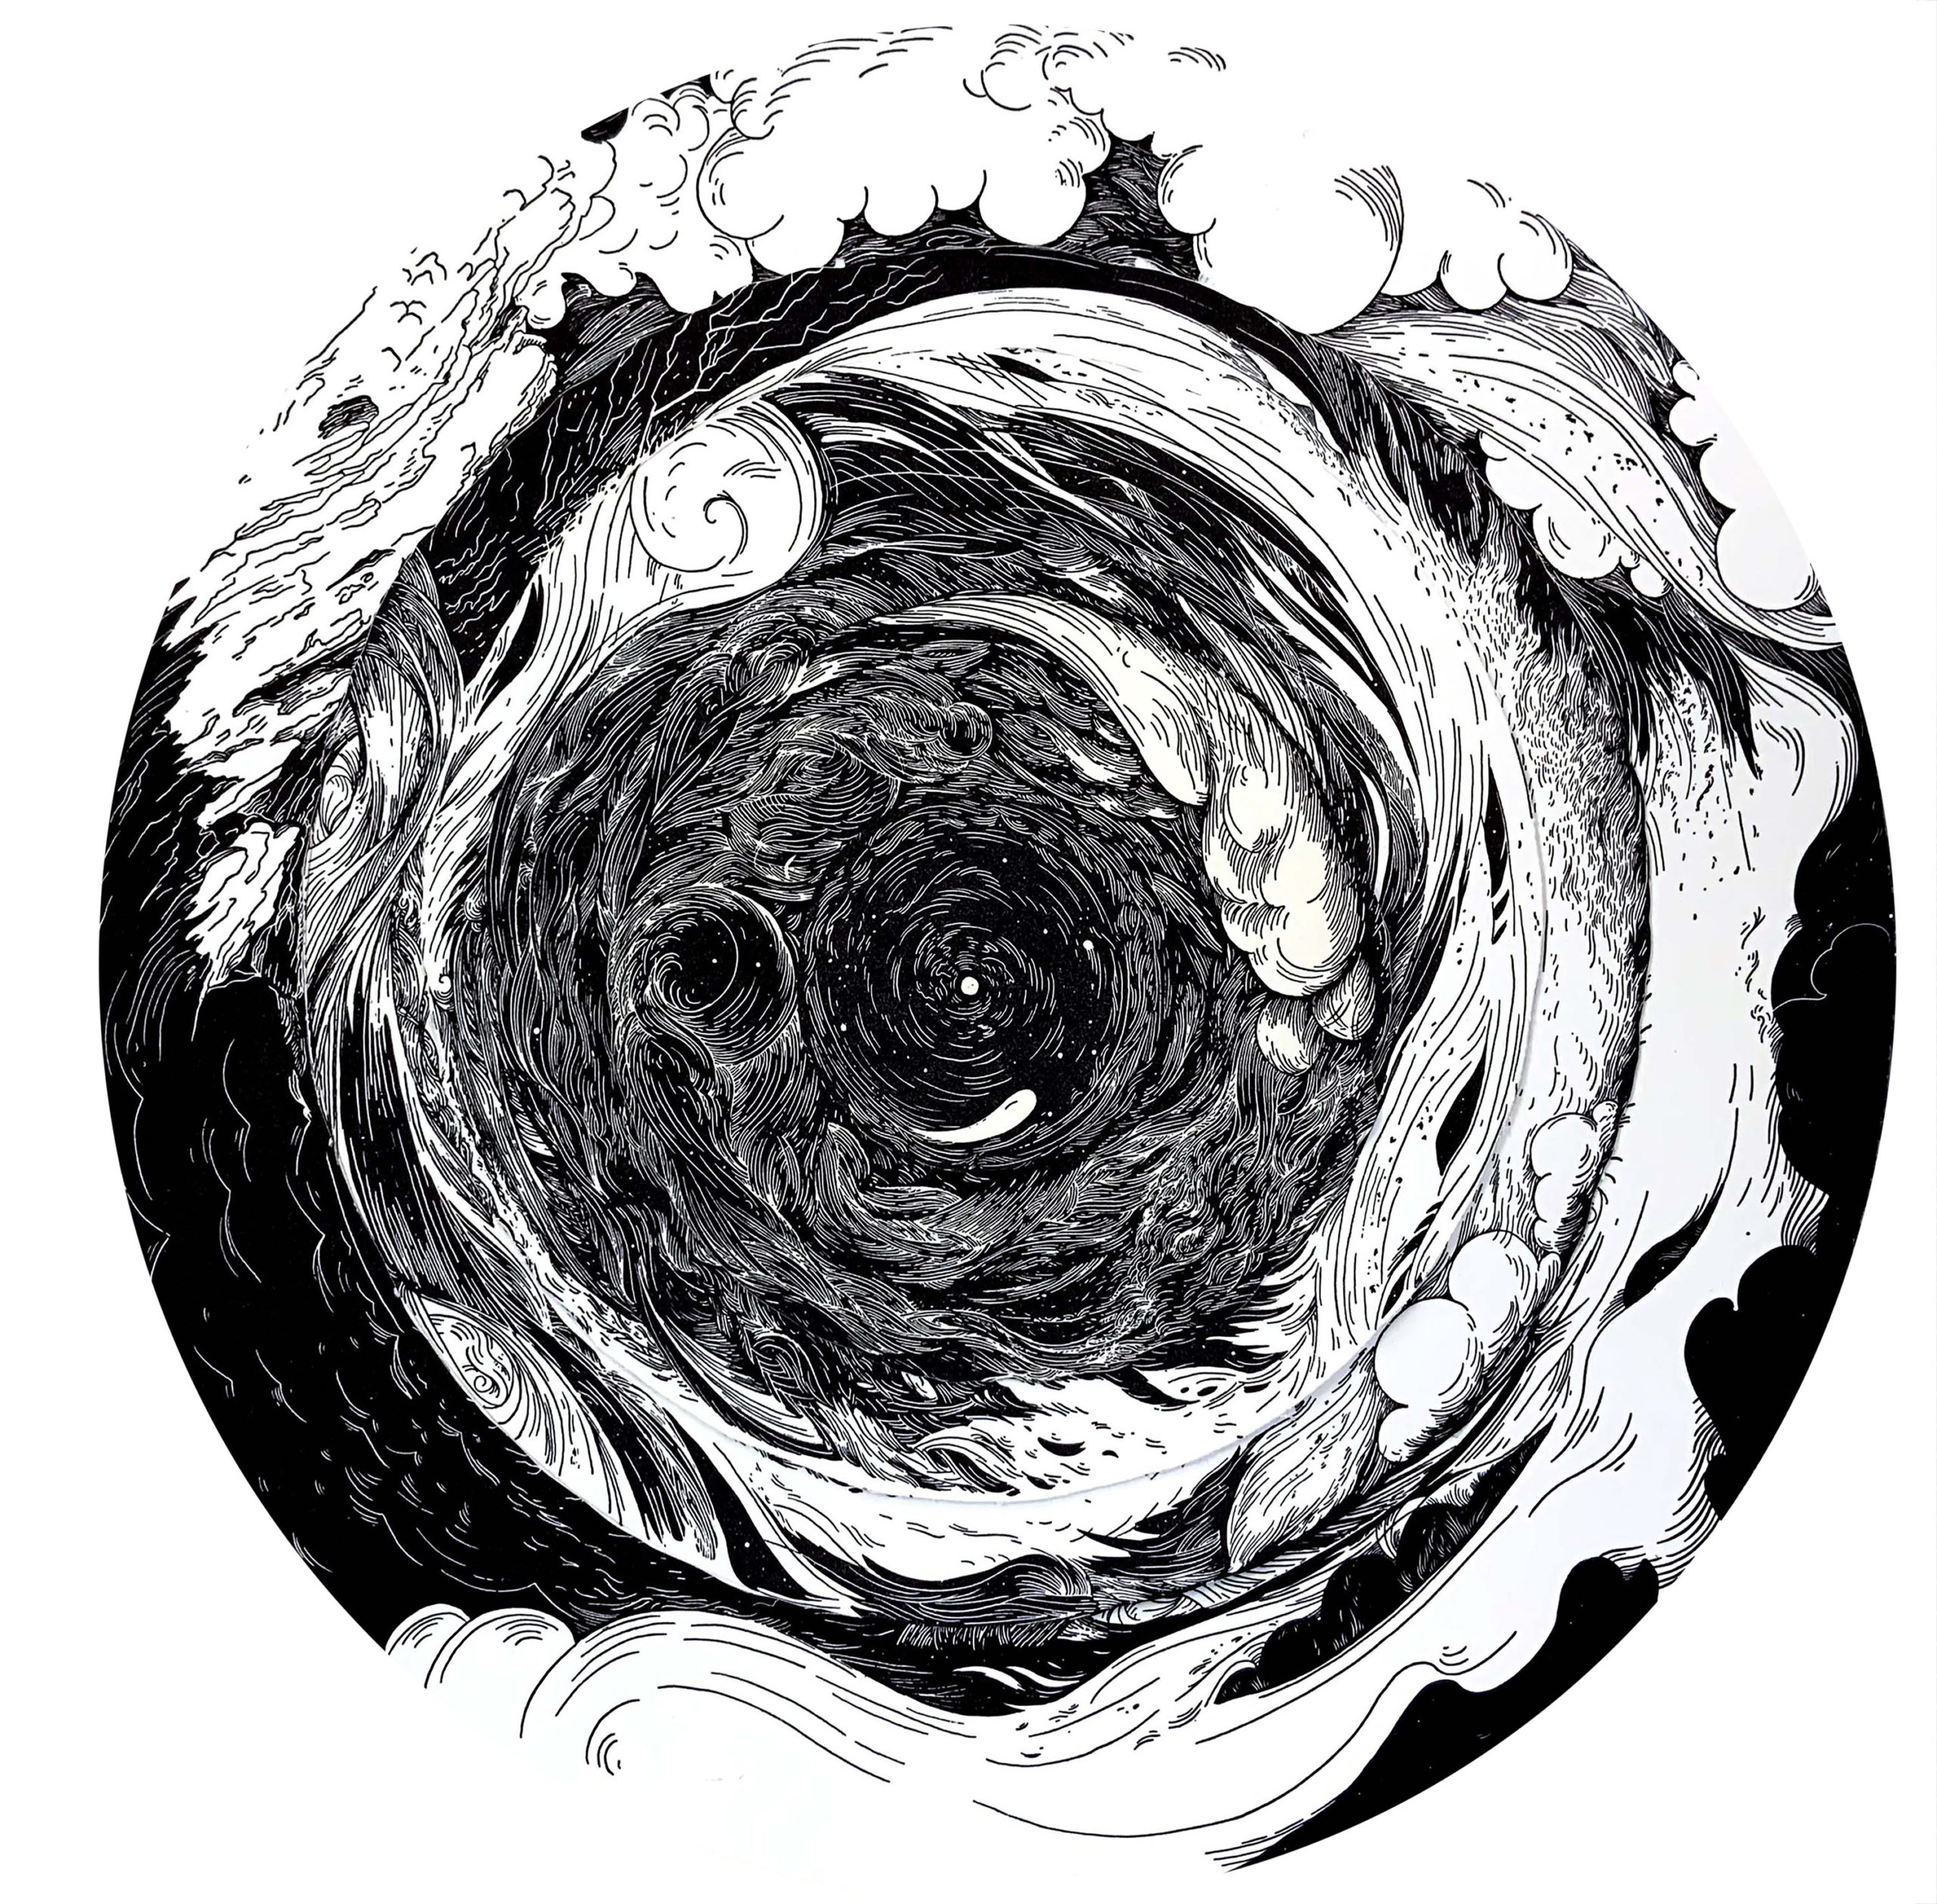 circular black and white whirlpool-like illustration